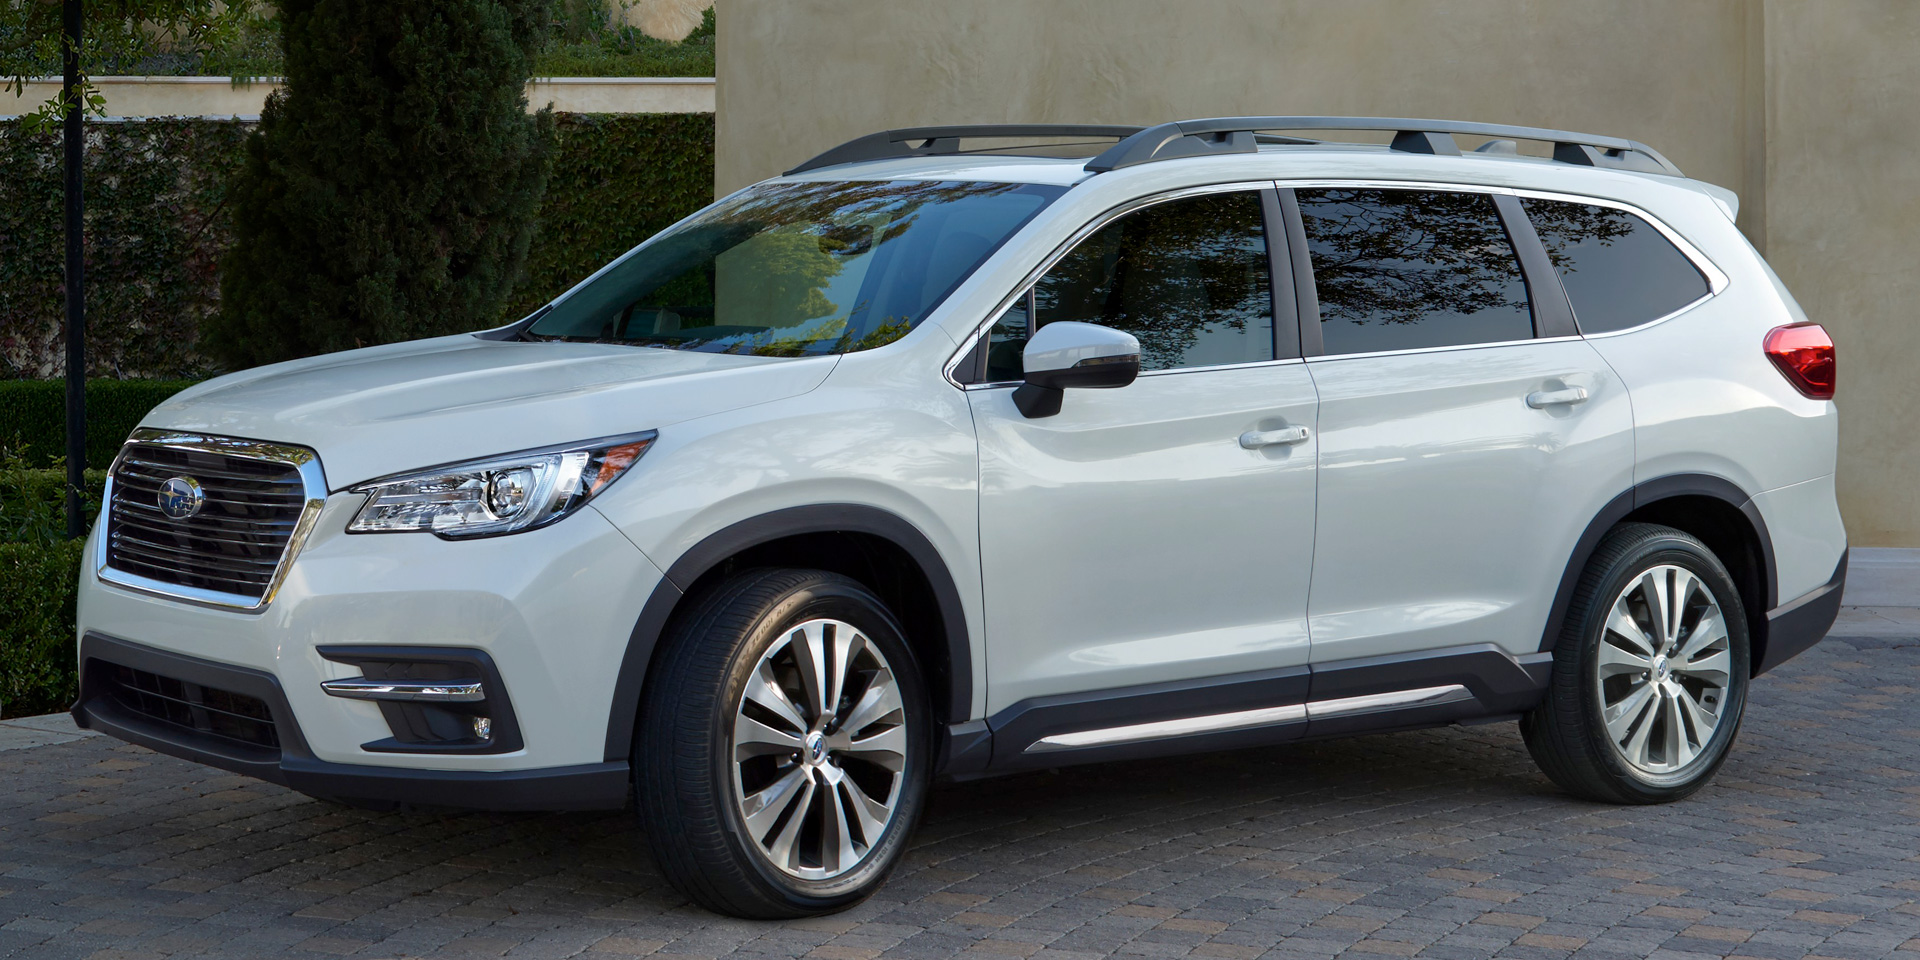 2019 Subaru Ascent Vehicles On Display Chicago